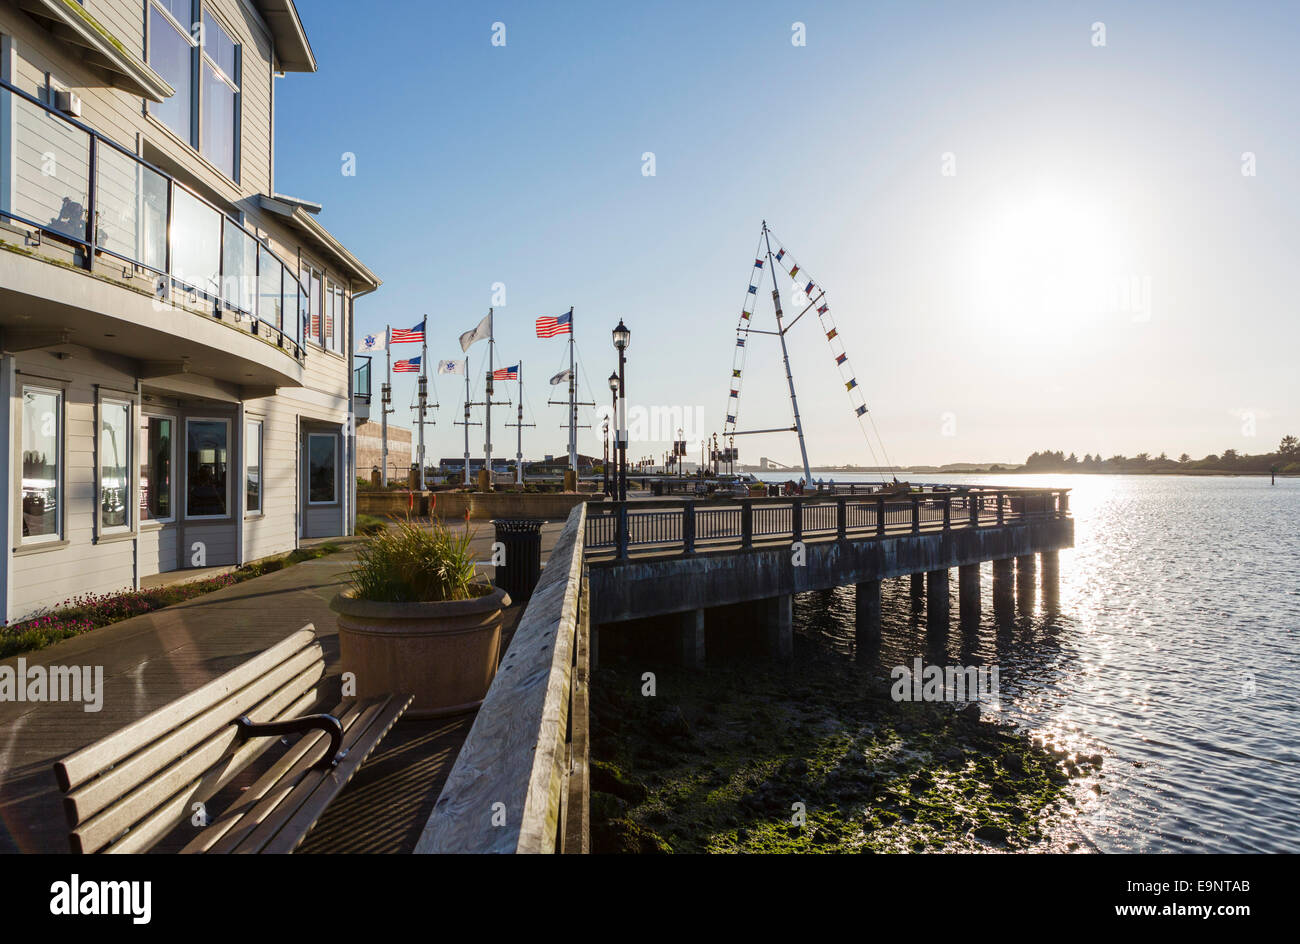 The Boardwalk in downtown Eureka in the late afternoon, Humboldt County, California, USA - Stock Image